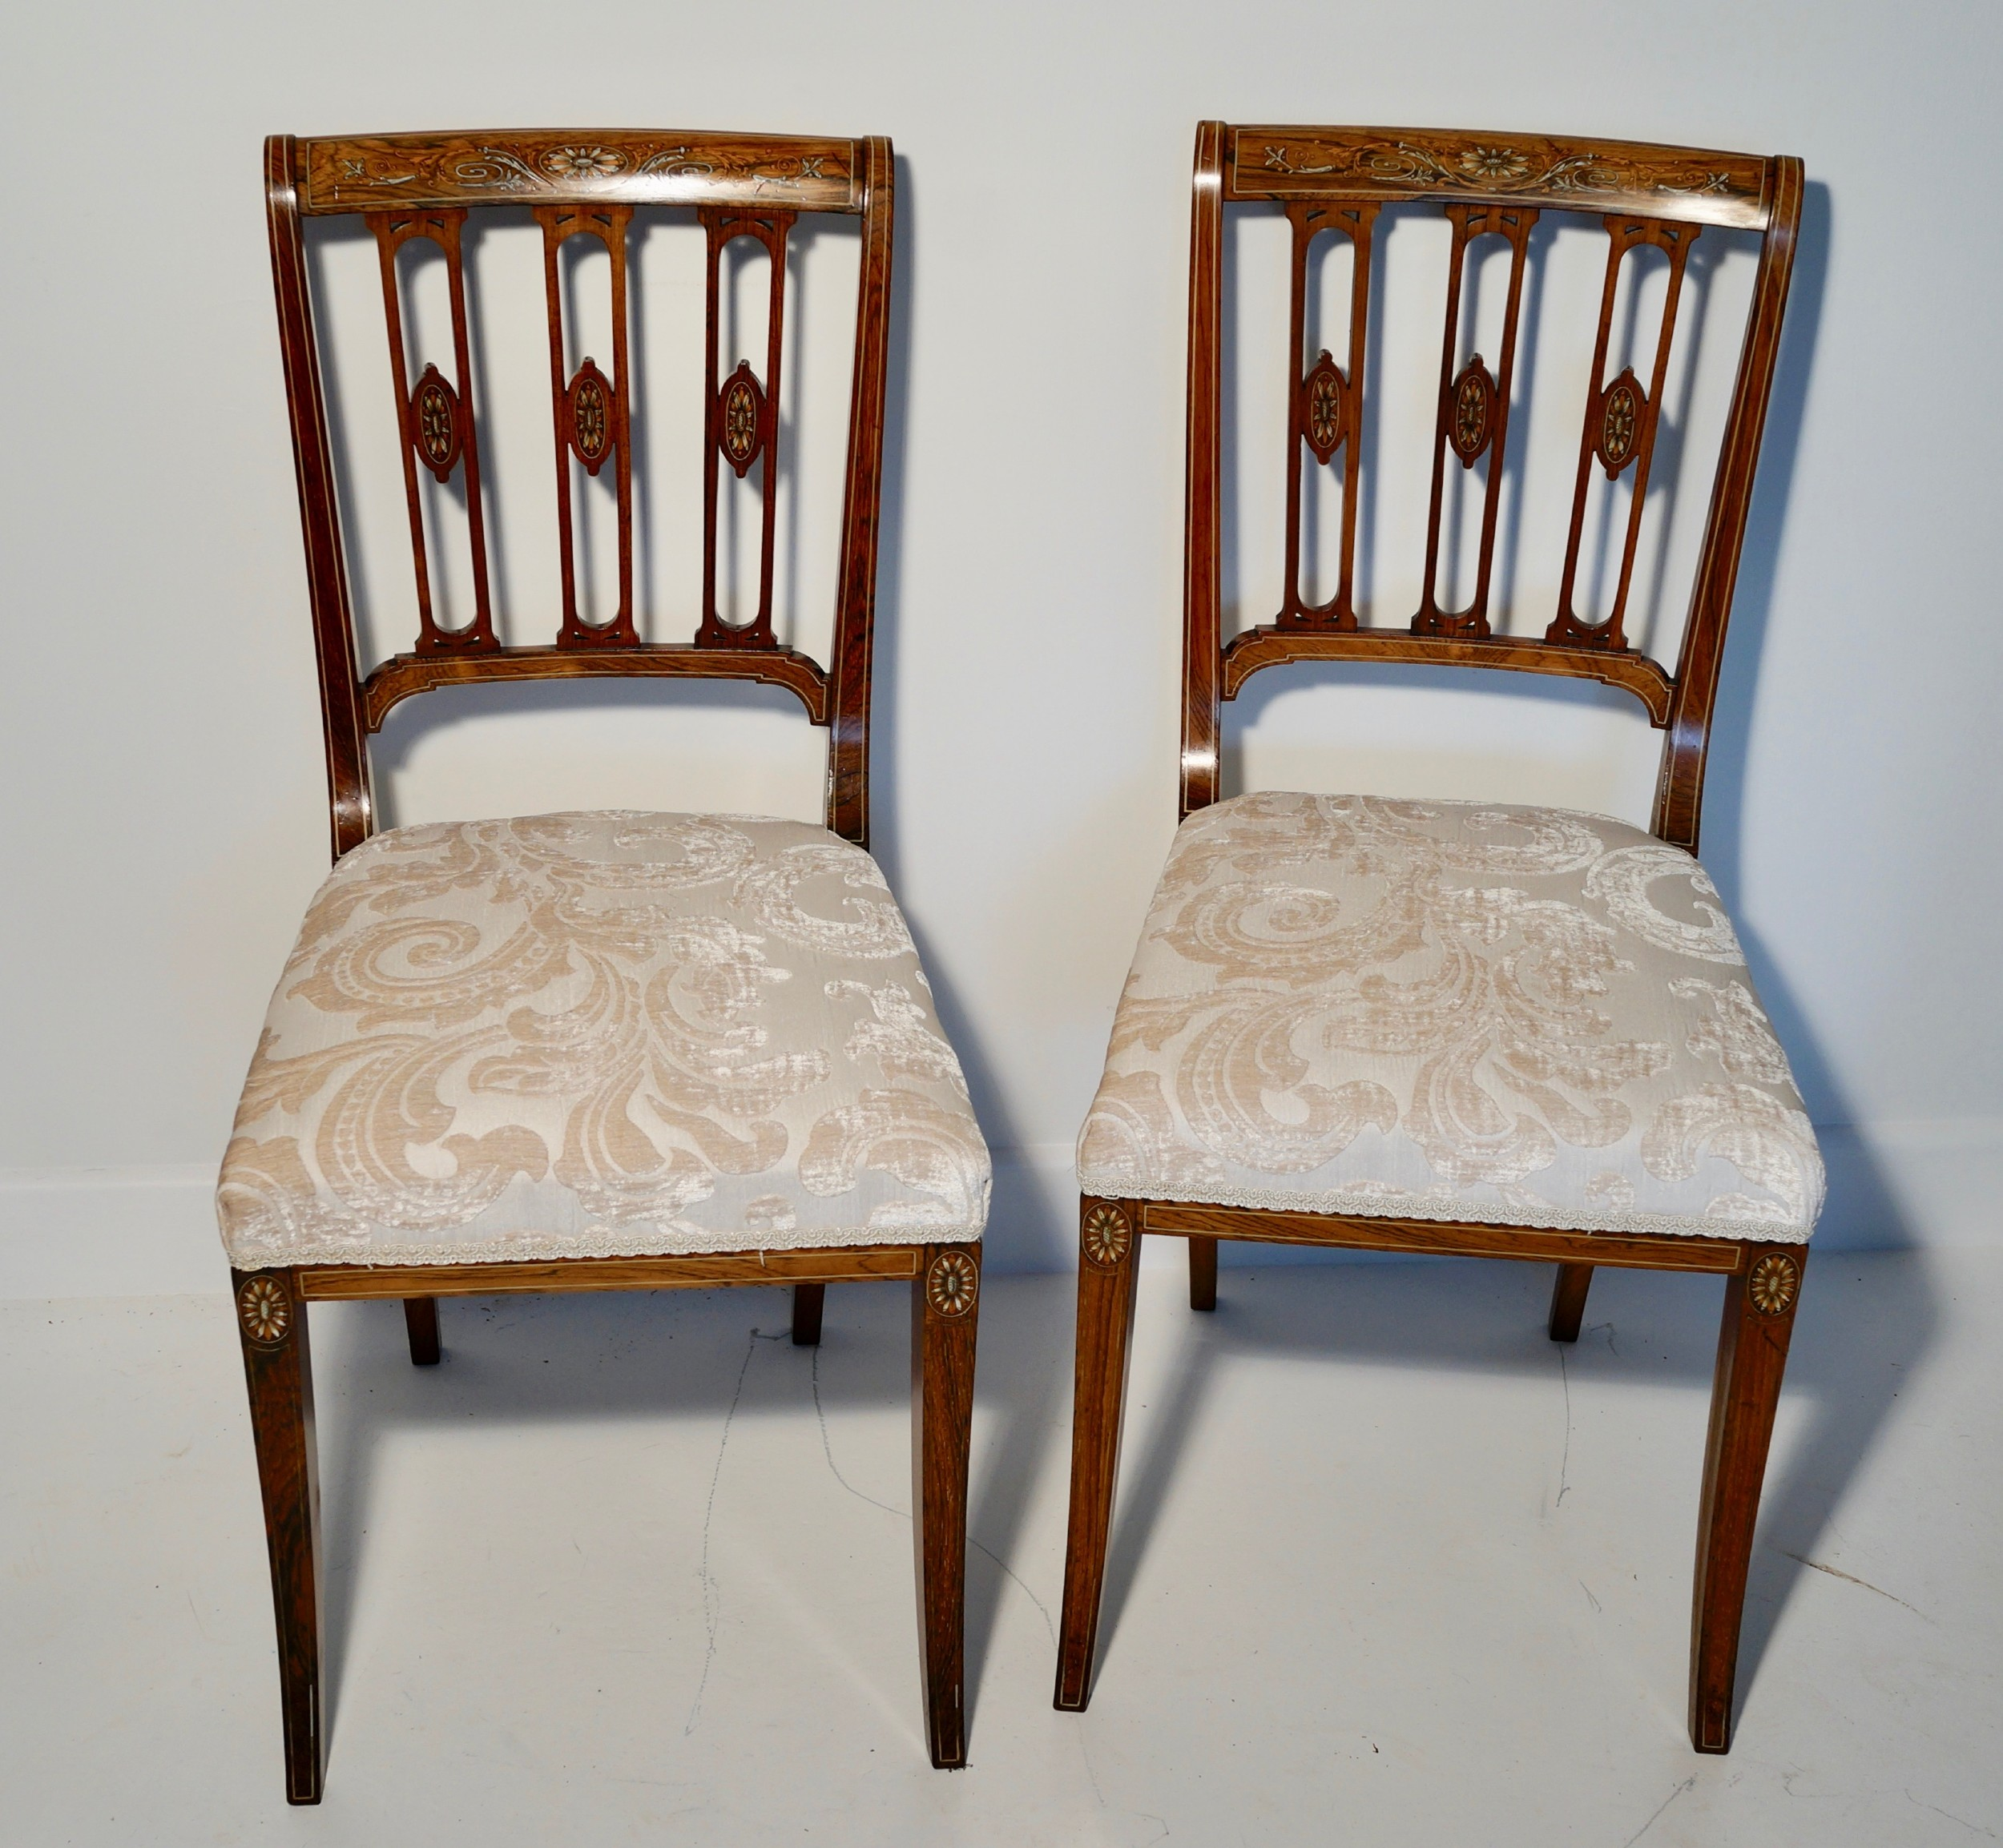 a superb edwardian pair of solid inlaid rosewood chairs